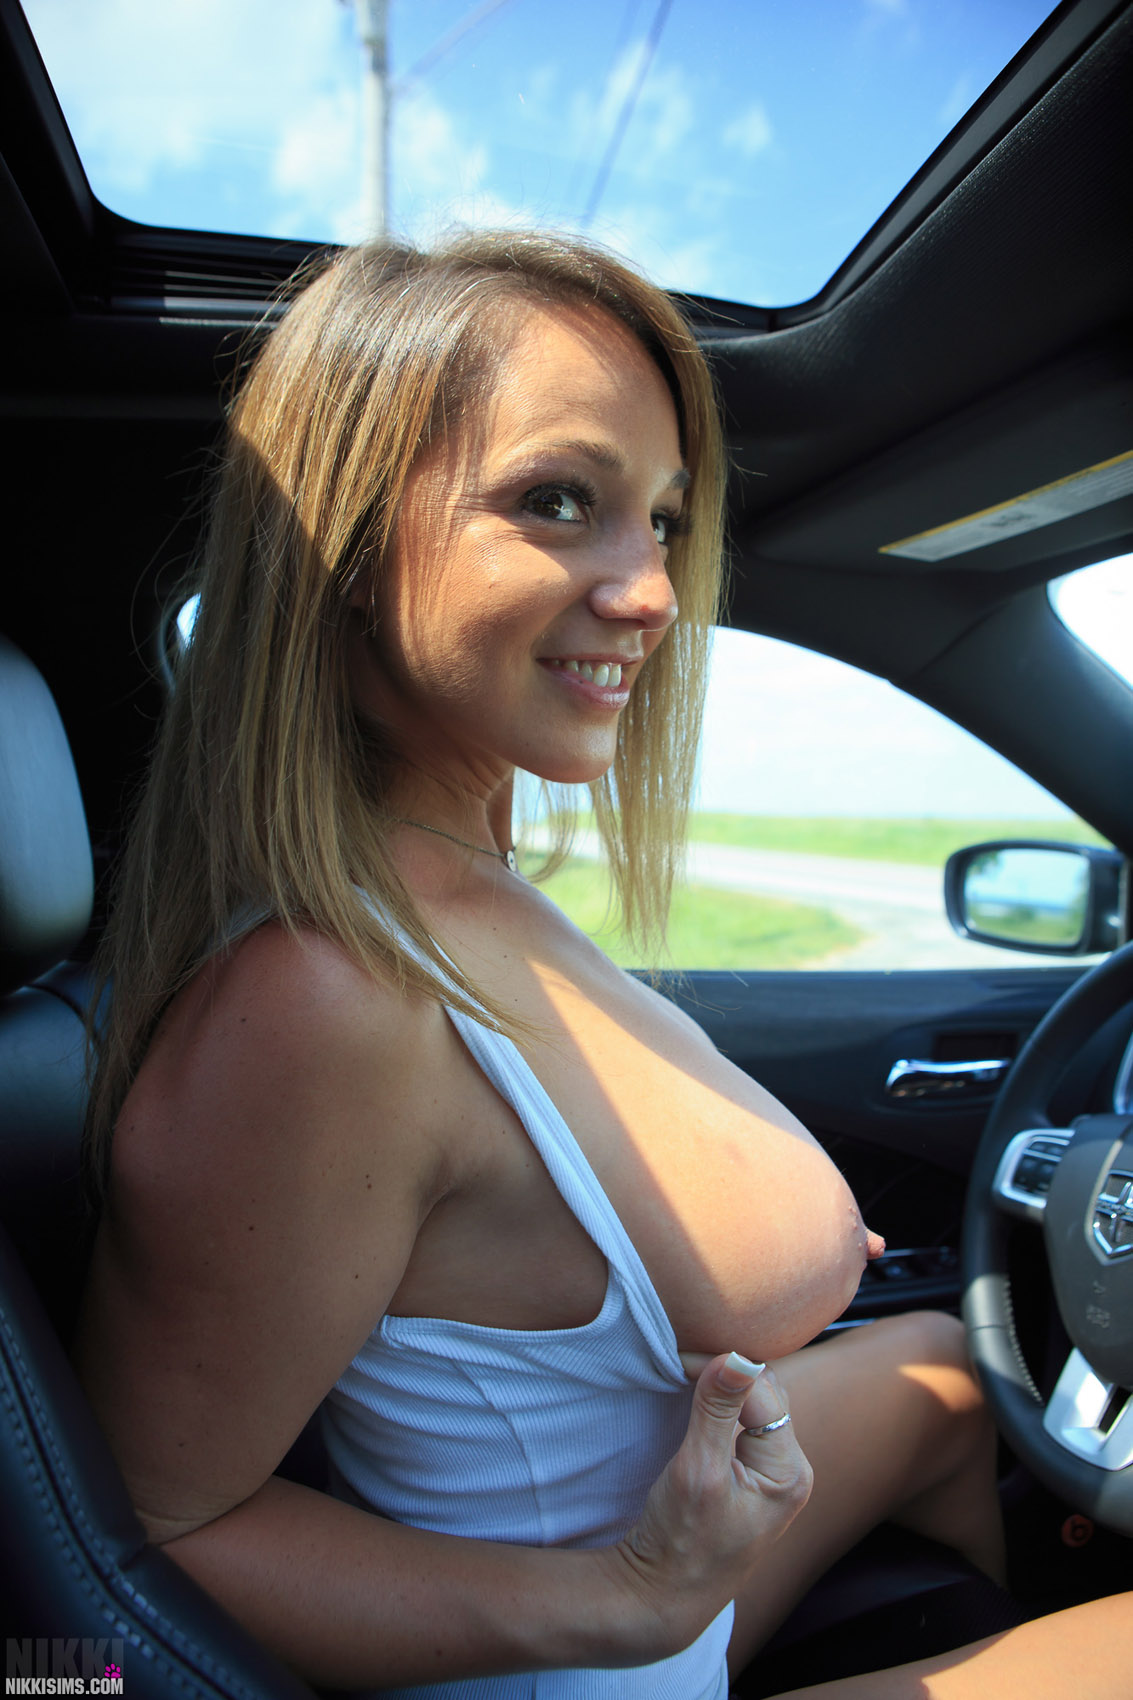 Nikki Sims Sexy Road Trip / Hotty Stop